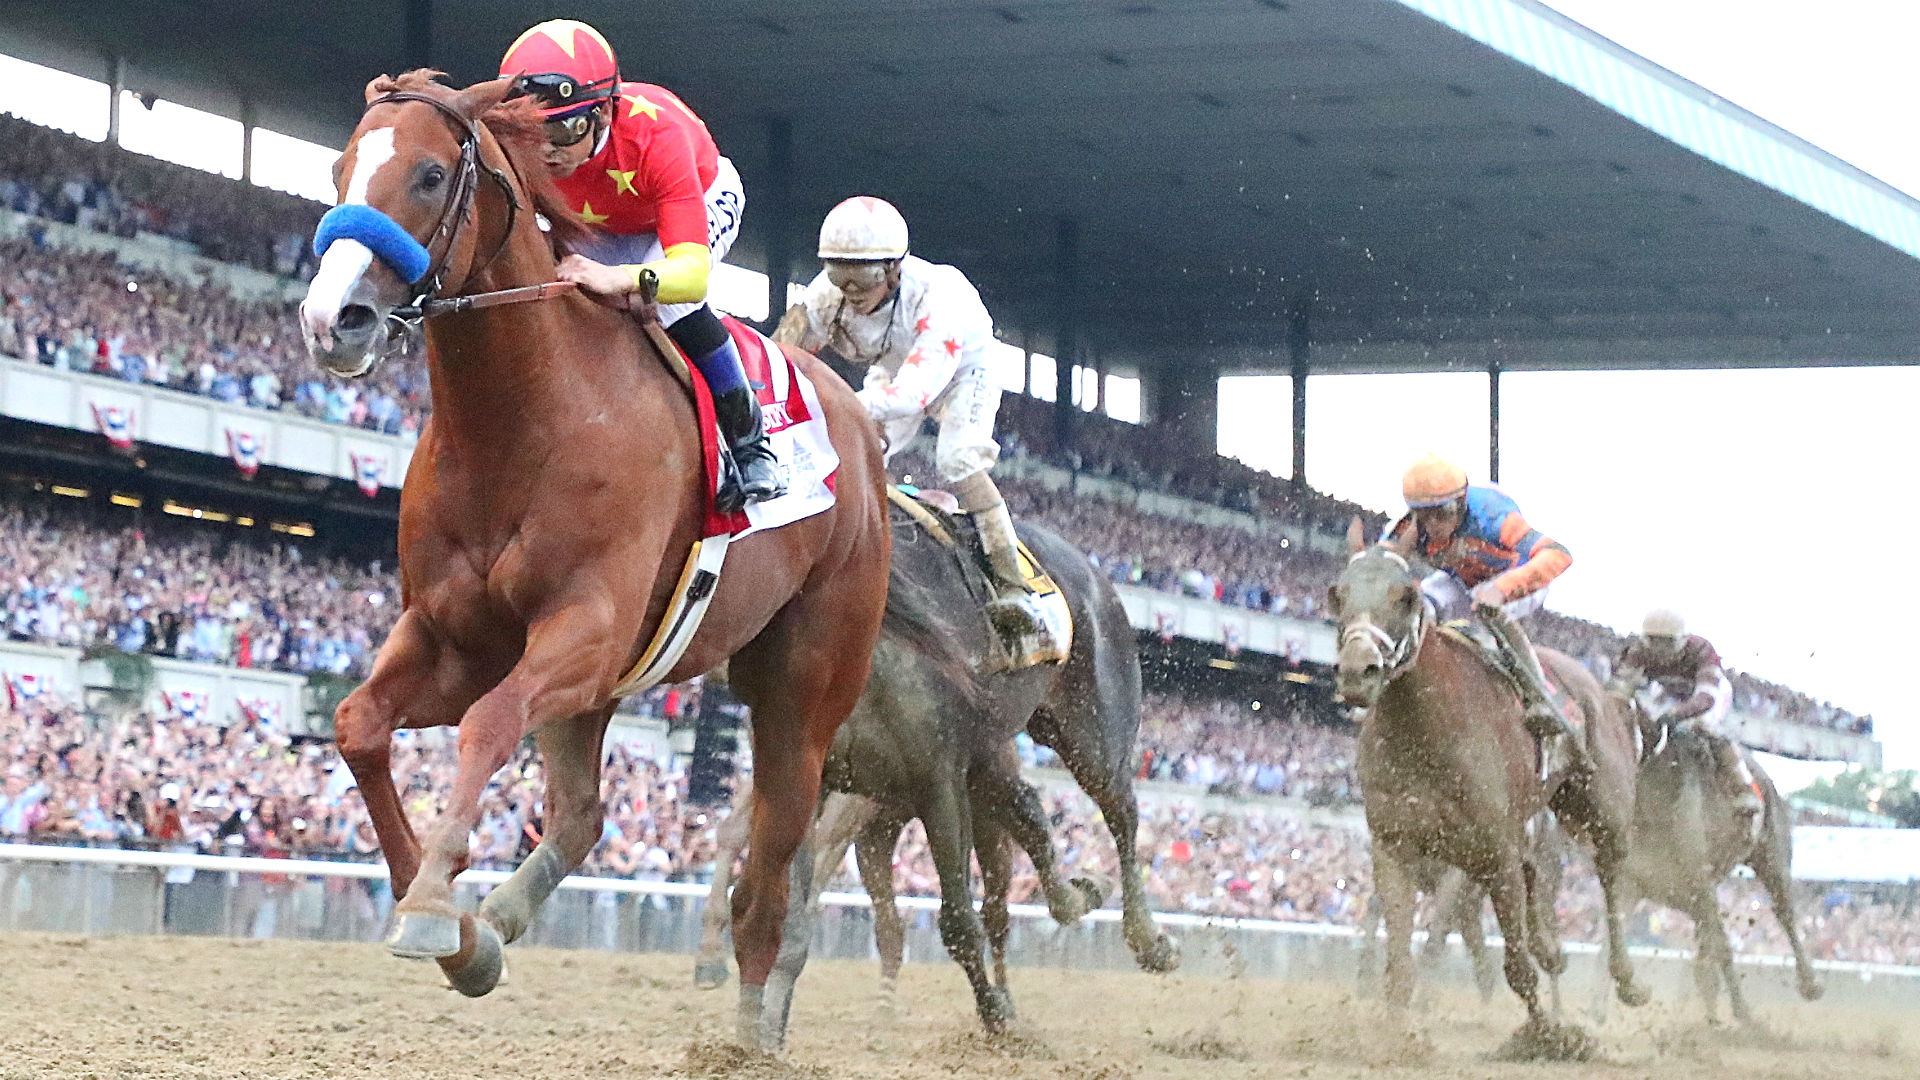 Justify S Triple Crown Called Into Question Amid Report Of